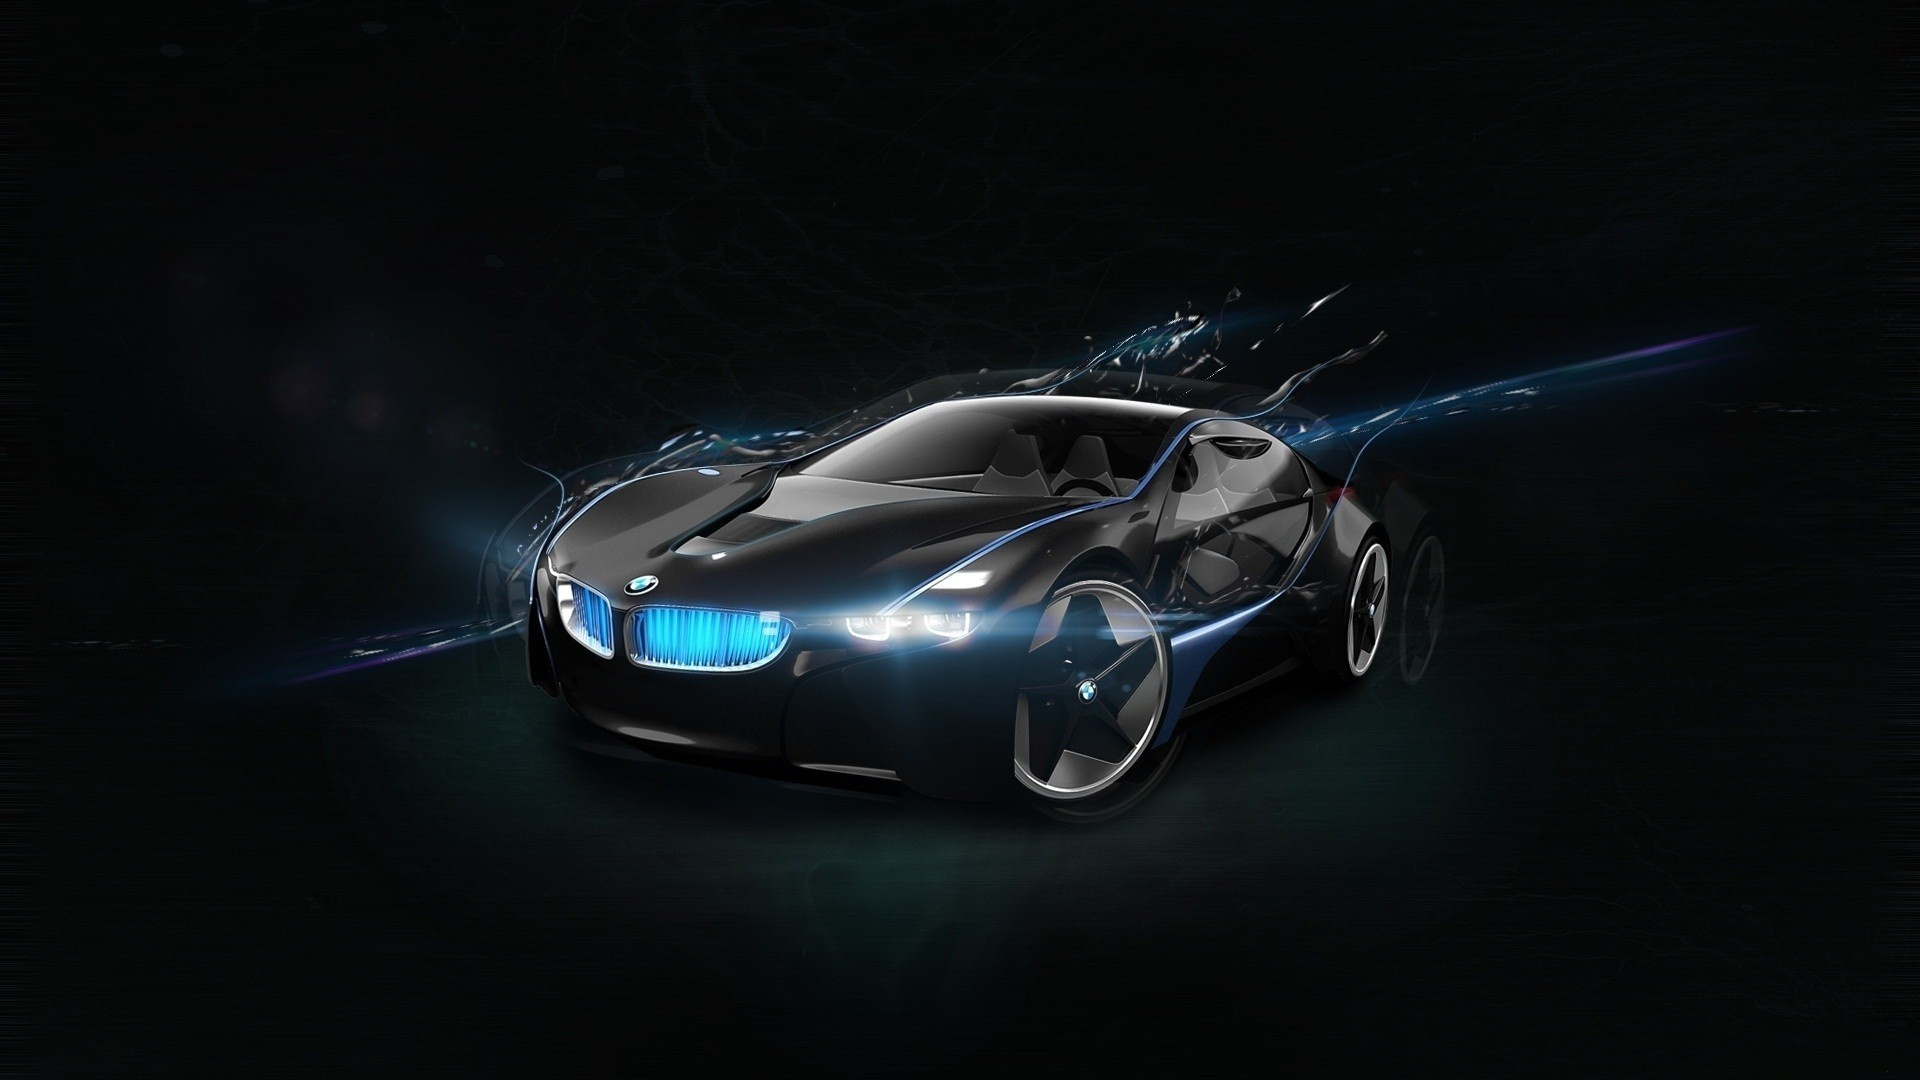 BMW Vision Super Car Wallpapers HD Wallpapers 1920x1080